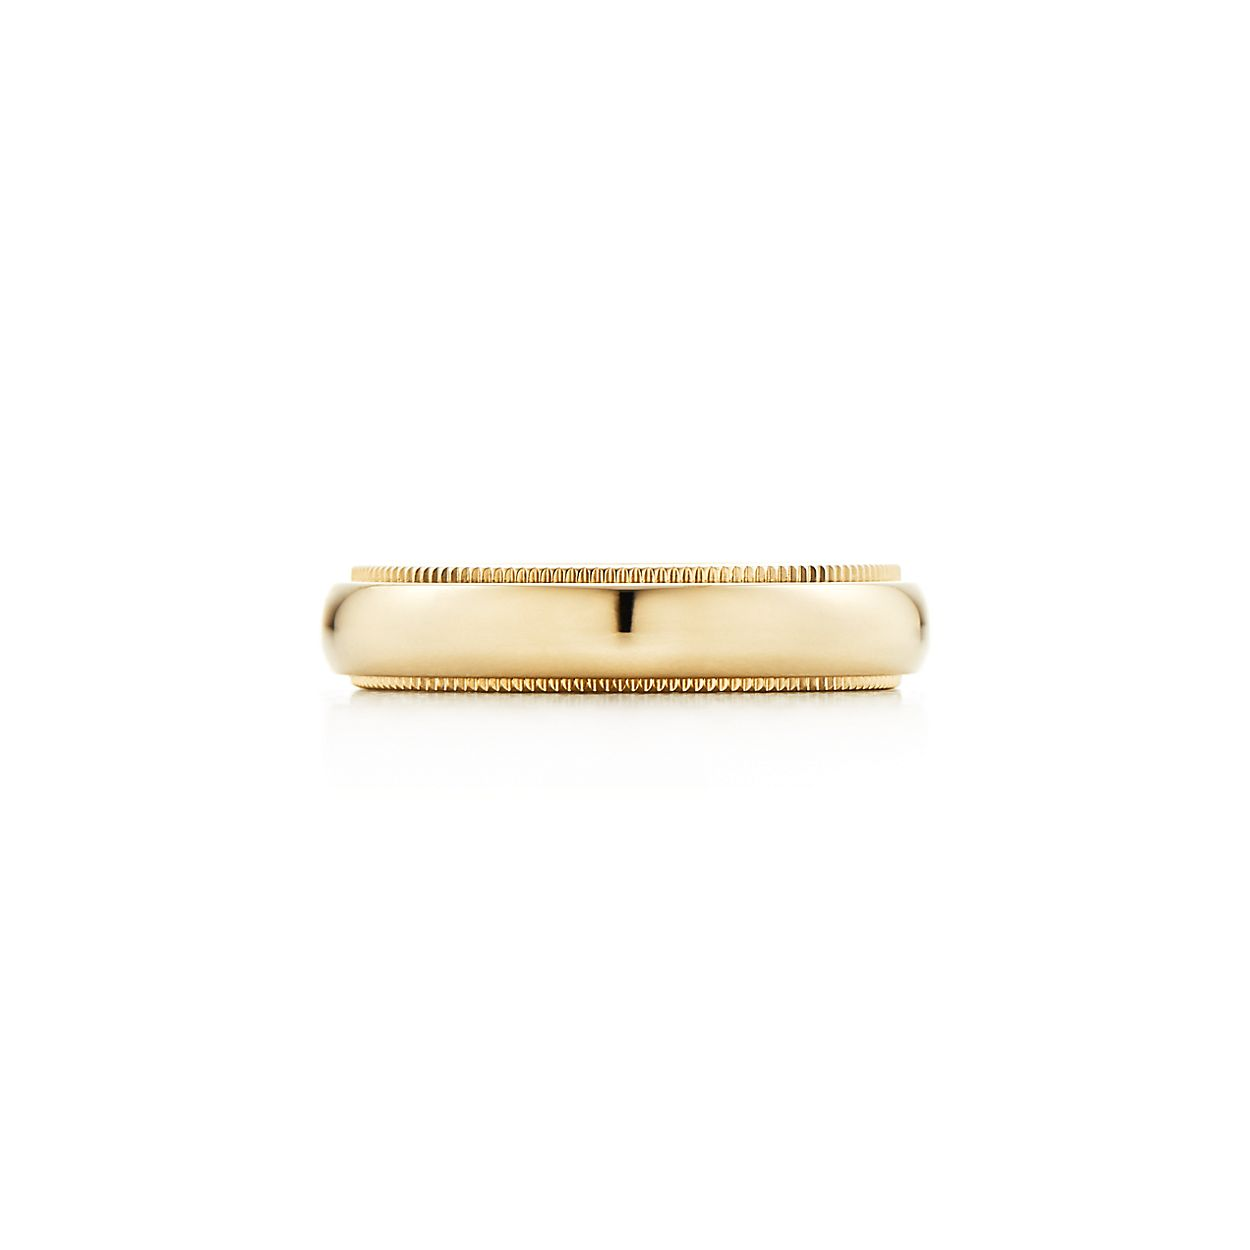 Tiffany Classic milgrain wedding band ring in 18k gold, 3 mm wide - Size 10 1/2 Tiffany & Co.